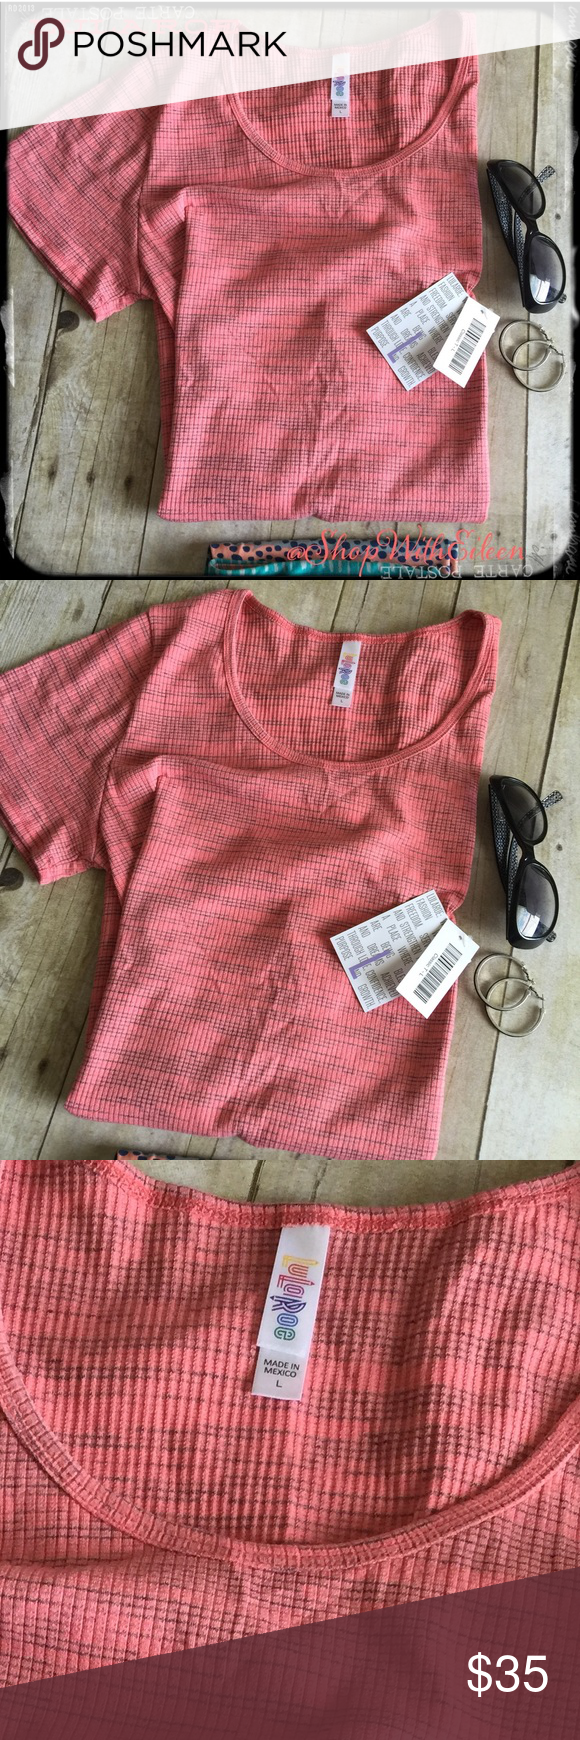 """🆕 Lularoe CORAL HEATHERED RIBBED Classic T~ 🆕 Lularoe CORAL HEATHERED RIBBED Classic T~ The """"Classic T"""" is sure to become a wardrobe staple. The Classic T is made from comfortable spun polyester jersey and is short sleeved with a high round neck line. This classic t is ribbed but not that stretchy ribbing! Material is 57% Cotton 41% Polyester & 2% Spandex! * This is not the ribbed fabric that stretches out losing its shape!  * I am not a consultant… Just a Lularoe addict that likes to…"""